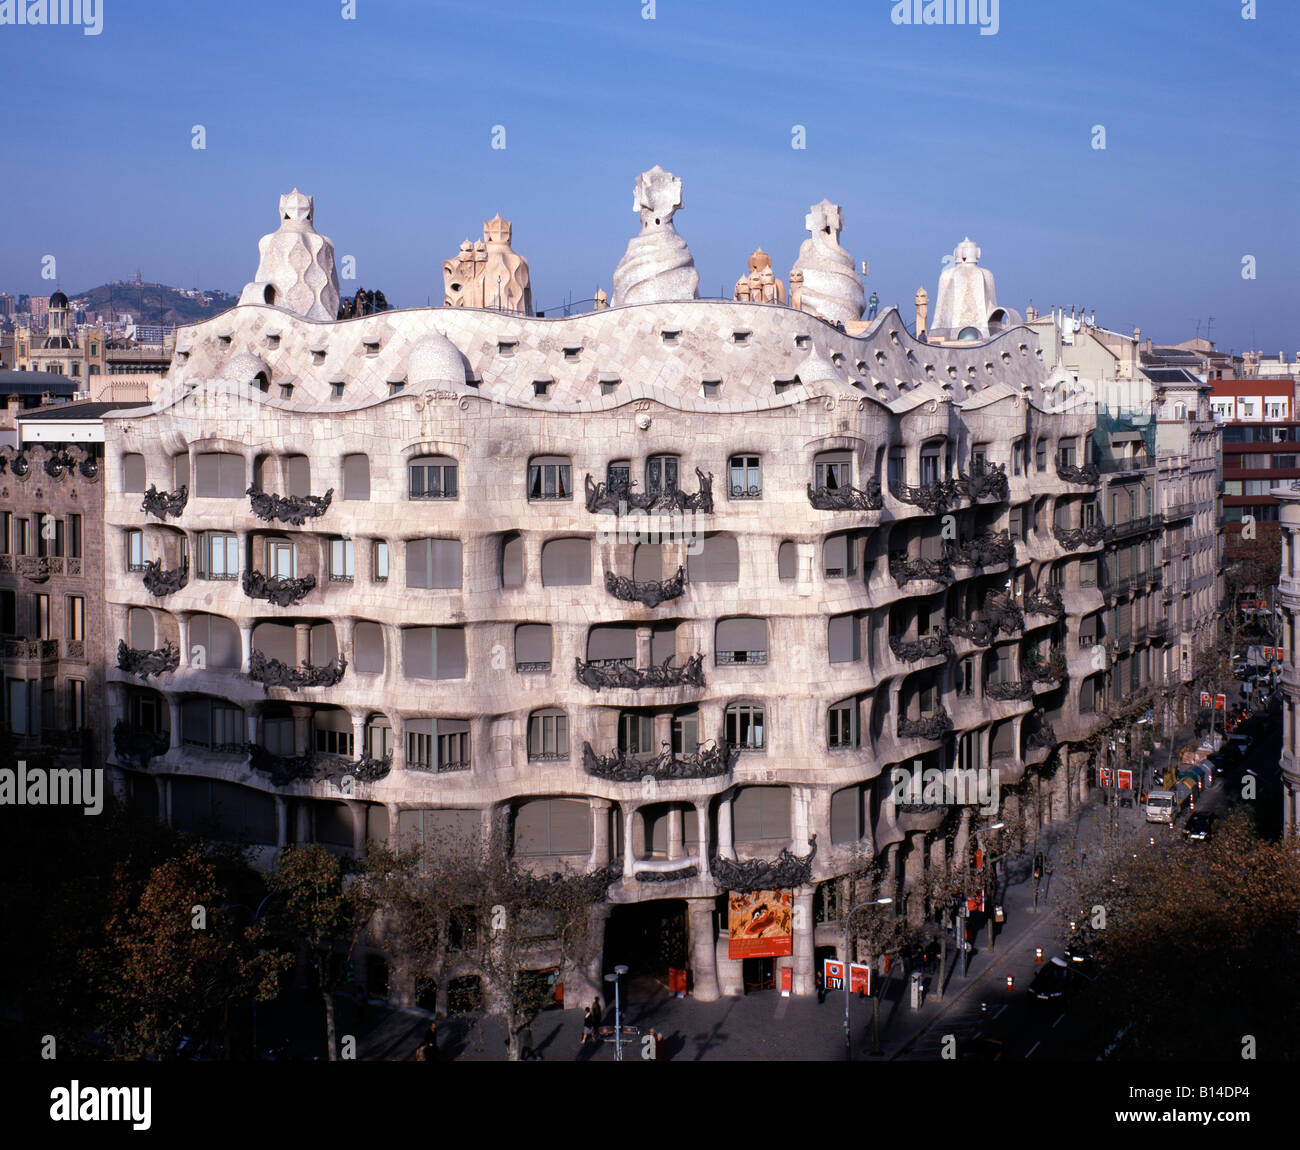 Barcelona casa mila la pedrera fassade architekt antonio gaudi stock photo royalty free - Architekt barcelona ...